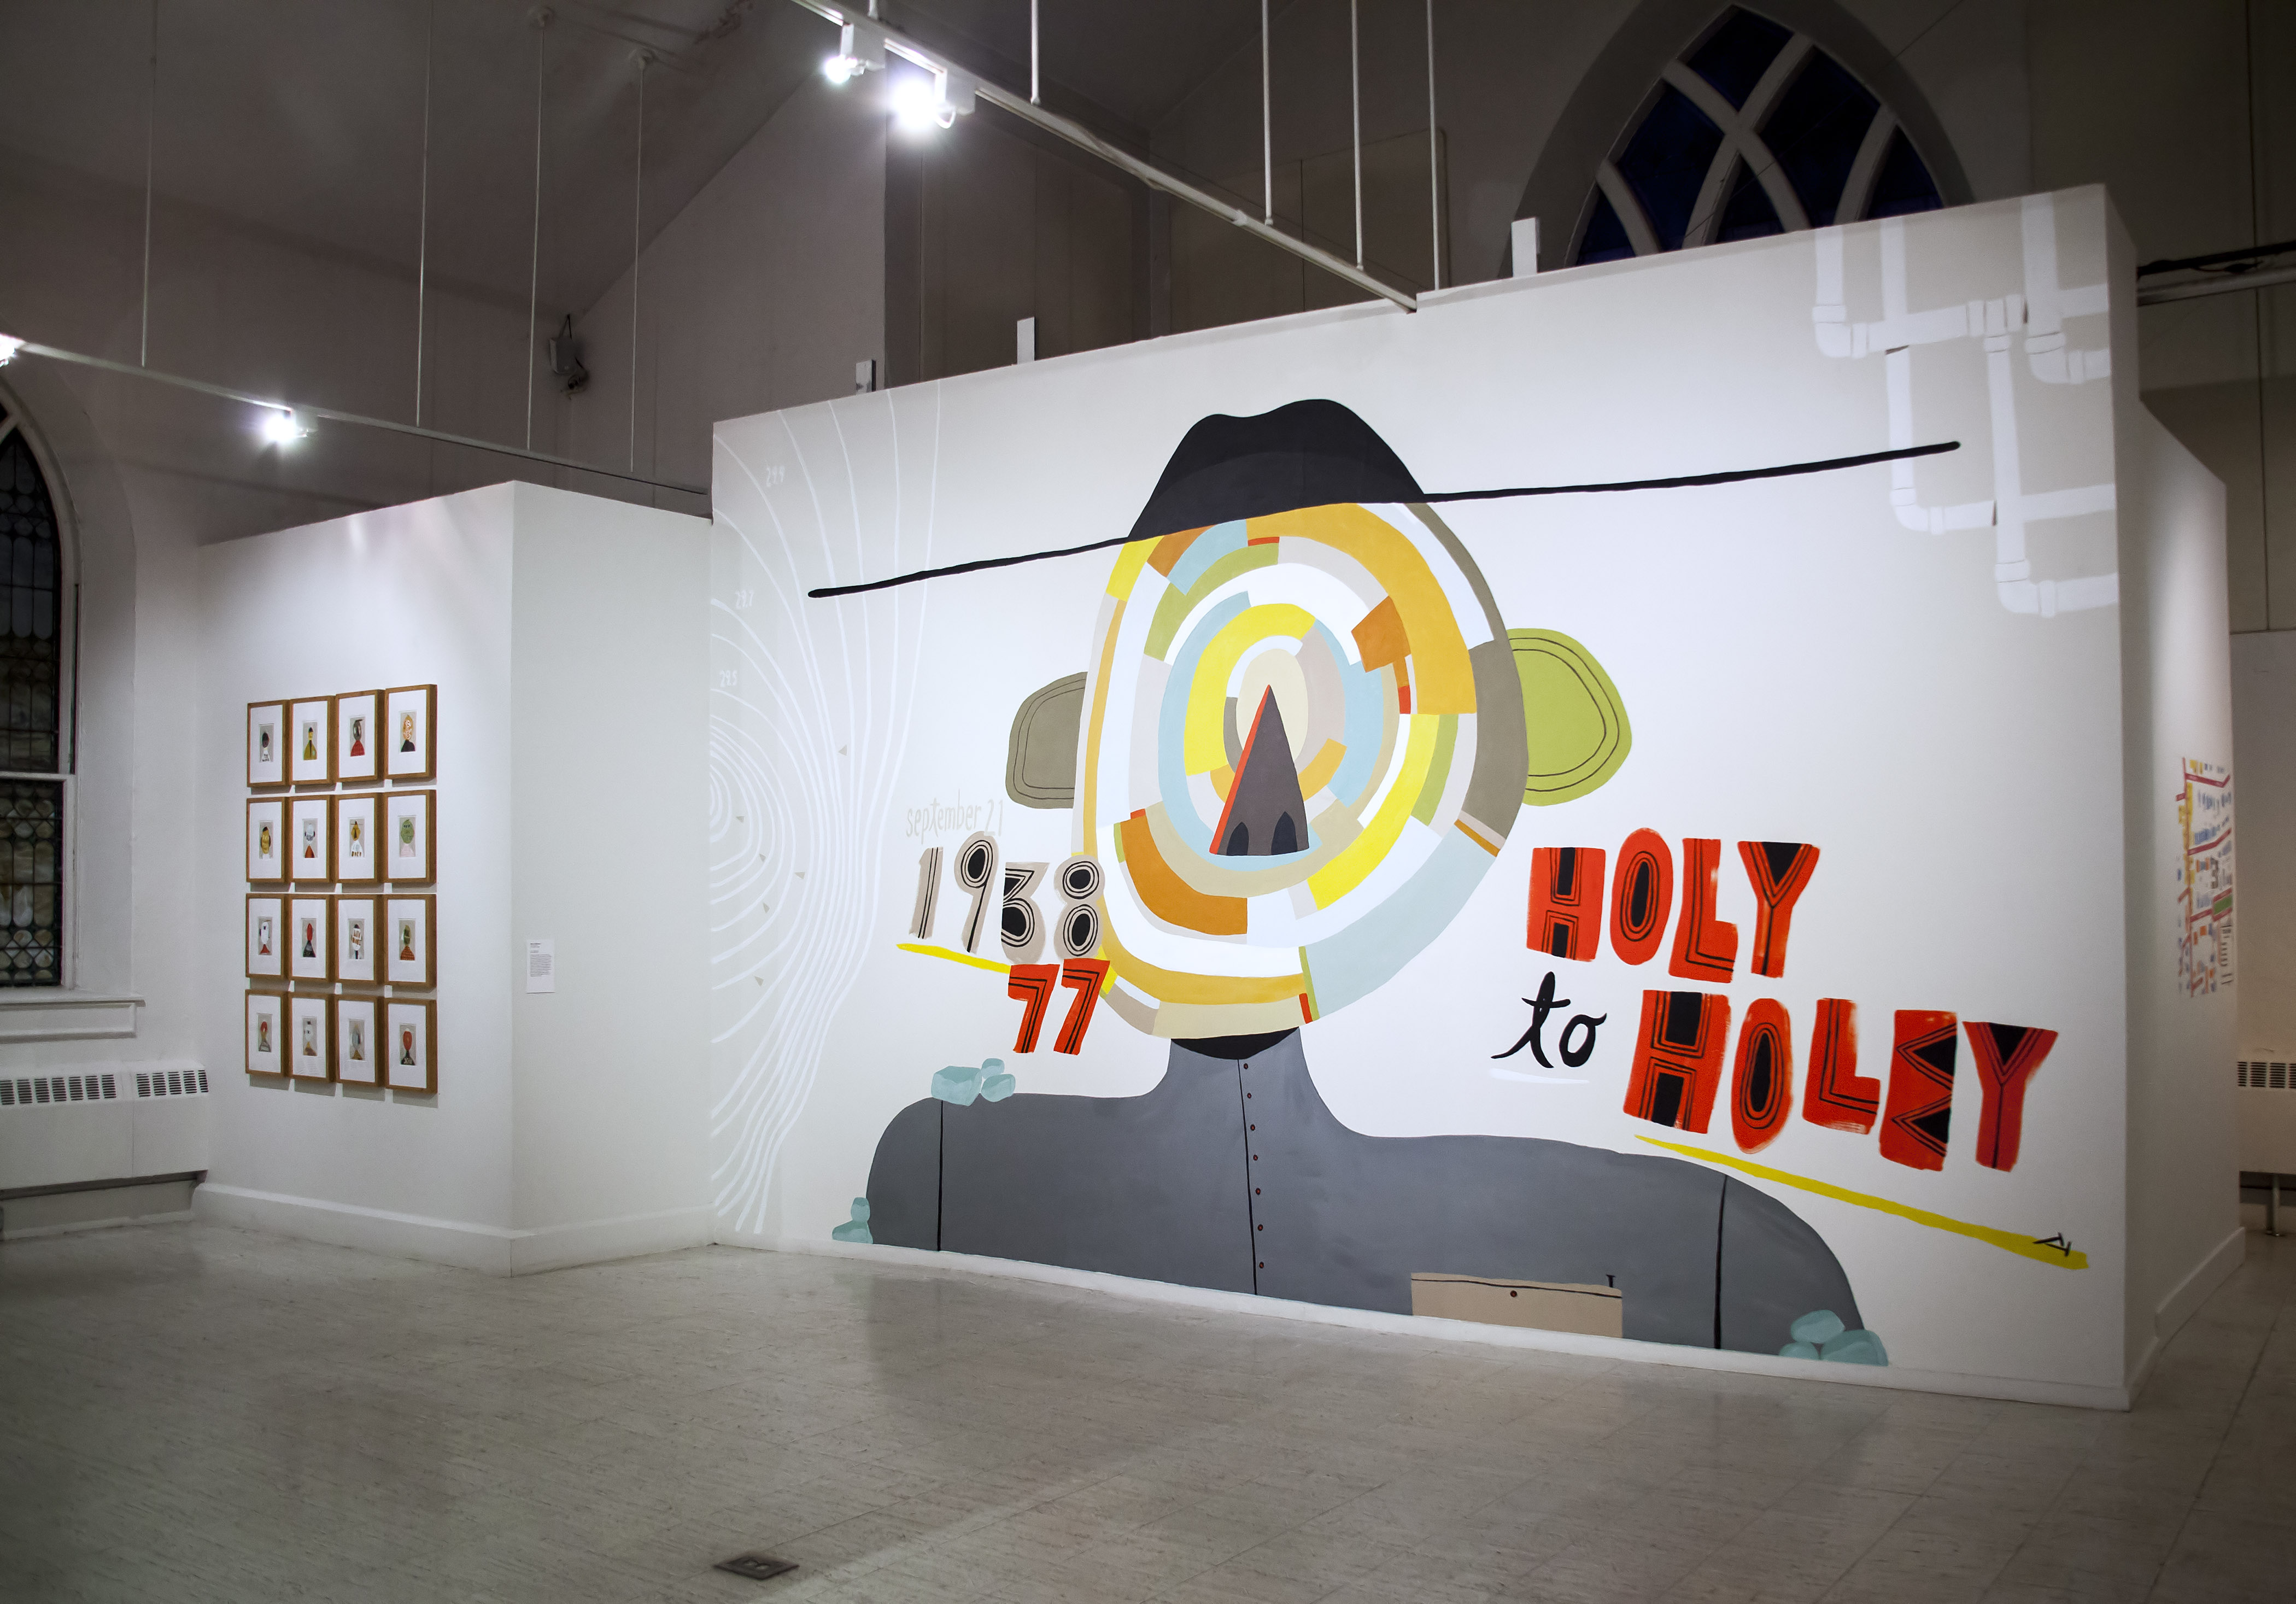 Mark Hoffmann, Holy to Holey, site-specific mural, 2016. Courtesy of the New Art Center.